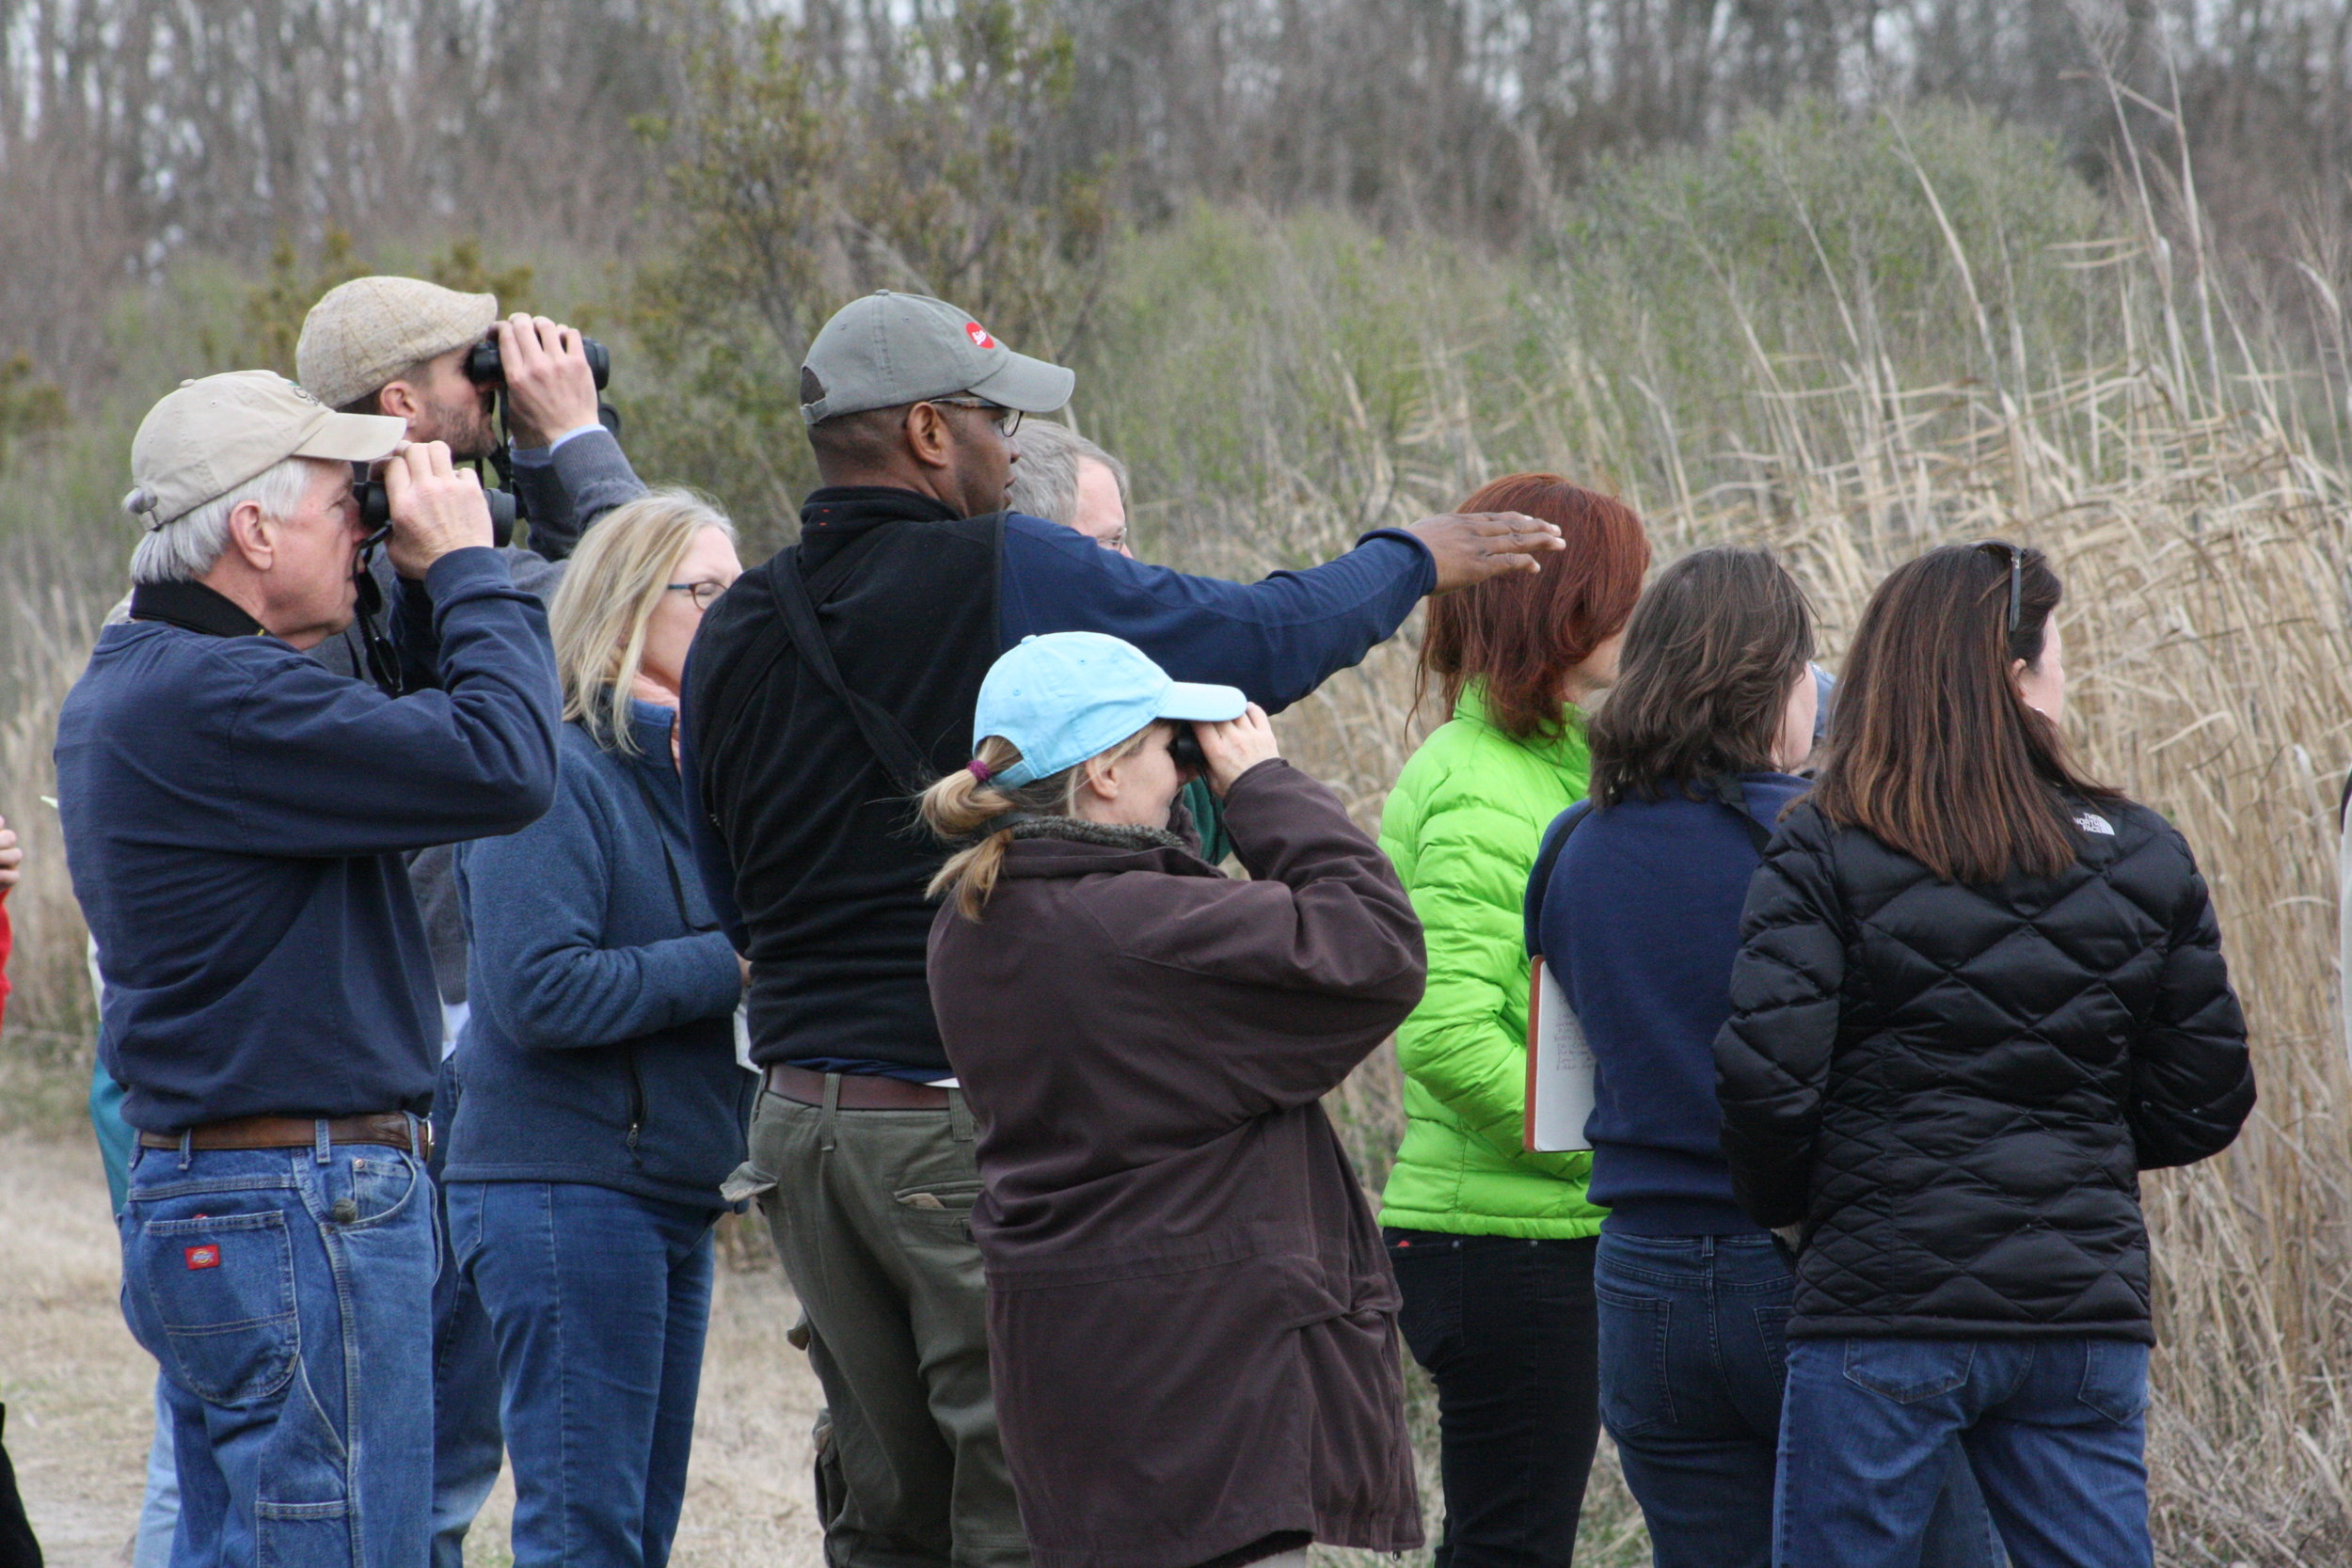 A bird watching class gathered in a group bird watching outdoors alongside their trainer.